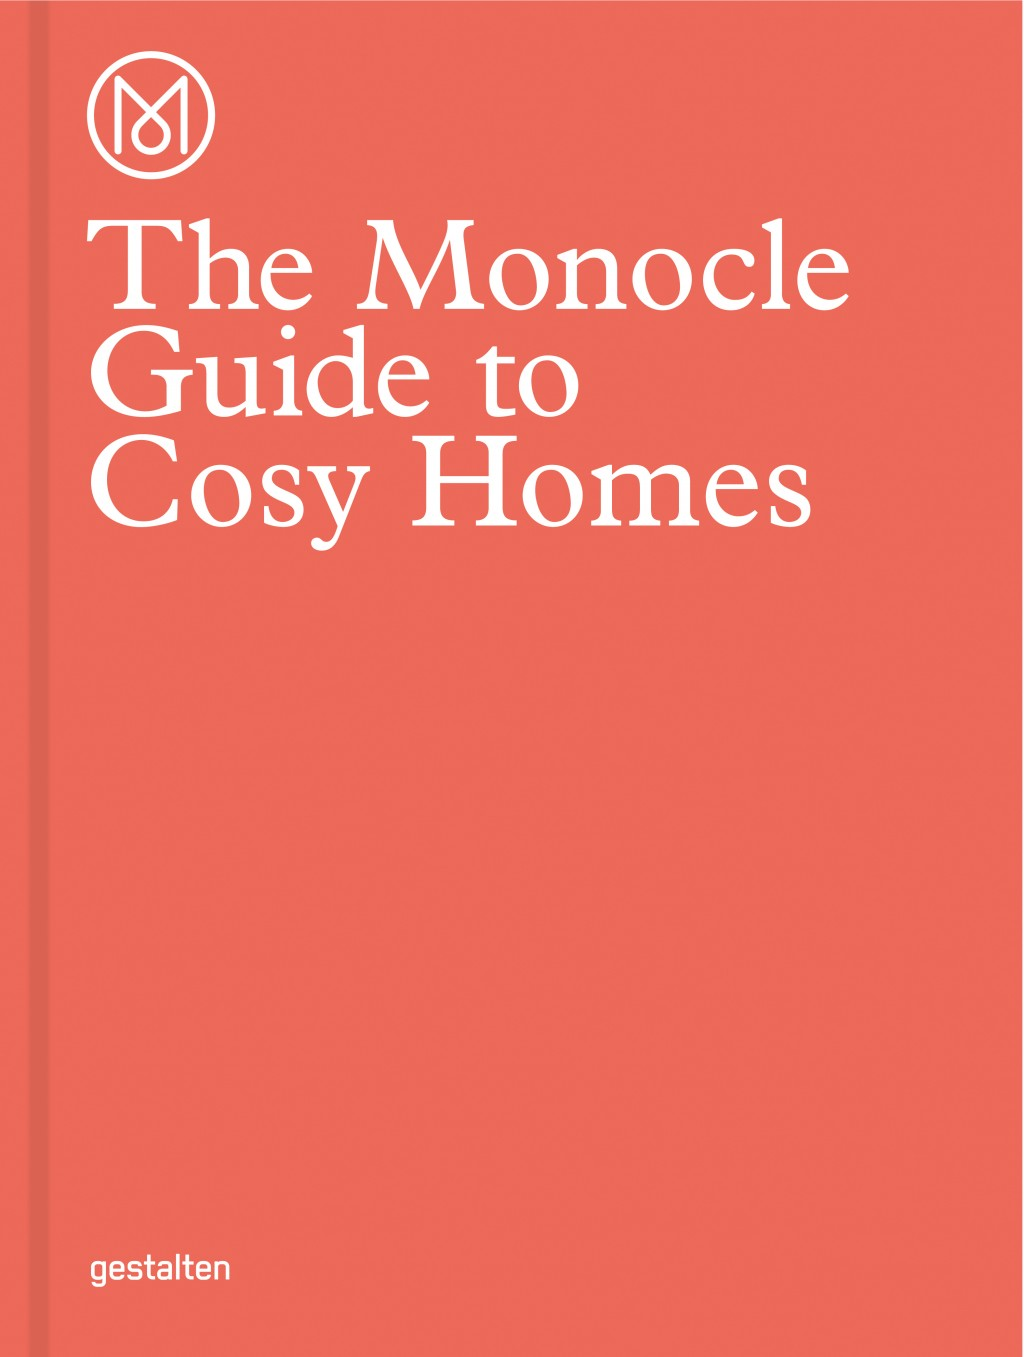 »The Monocle Guide to Cosy Homes von Monocle«, © Gestalten 2015